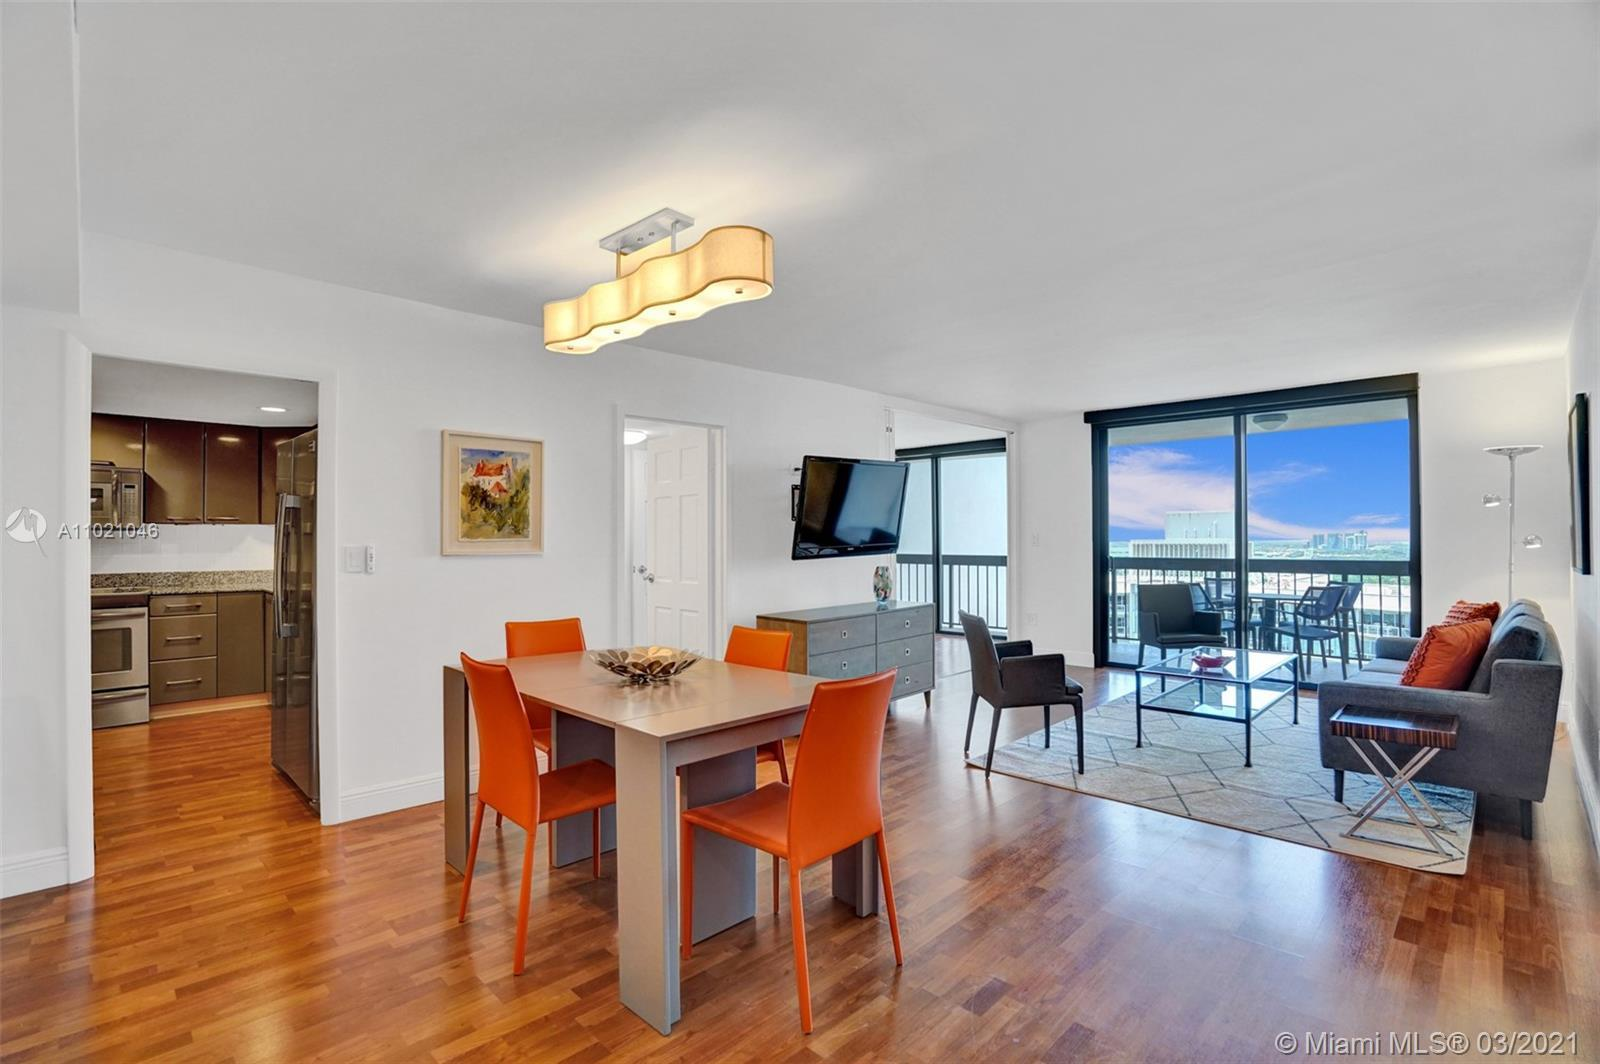 TURN KEY! Move in Ready Unit on most desired south end of Brickell Avenue. Spacious & Remodeled, thi